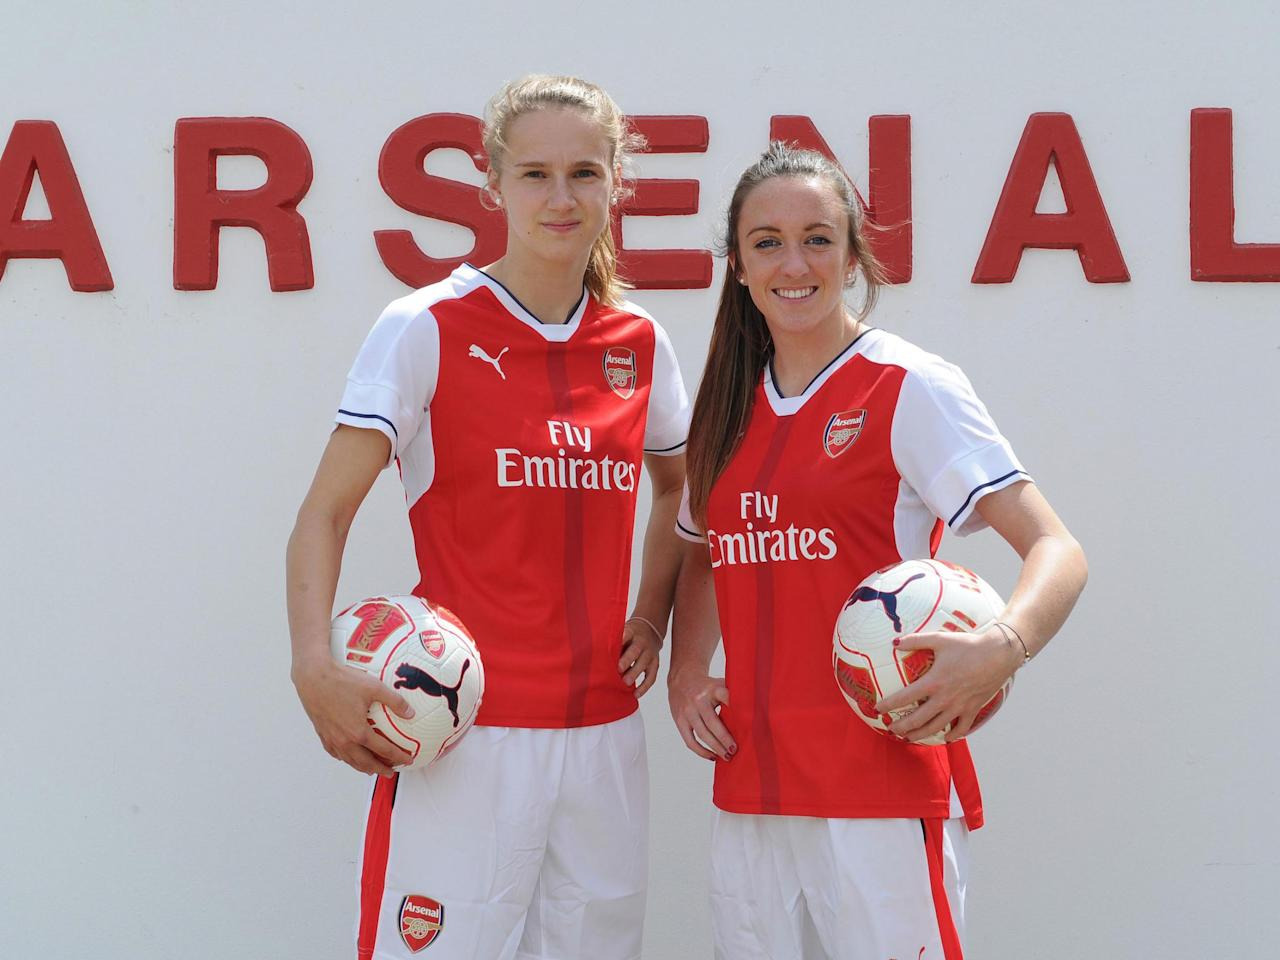 Arsenal drop 'Ladies' from women's team name to 'move the modern game forward'